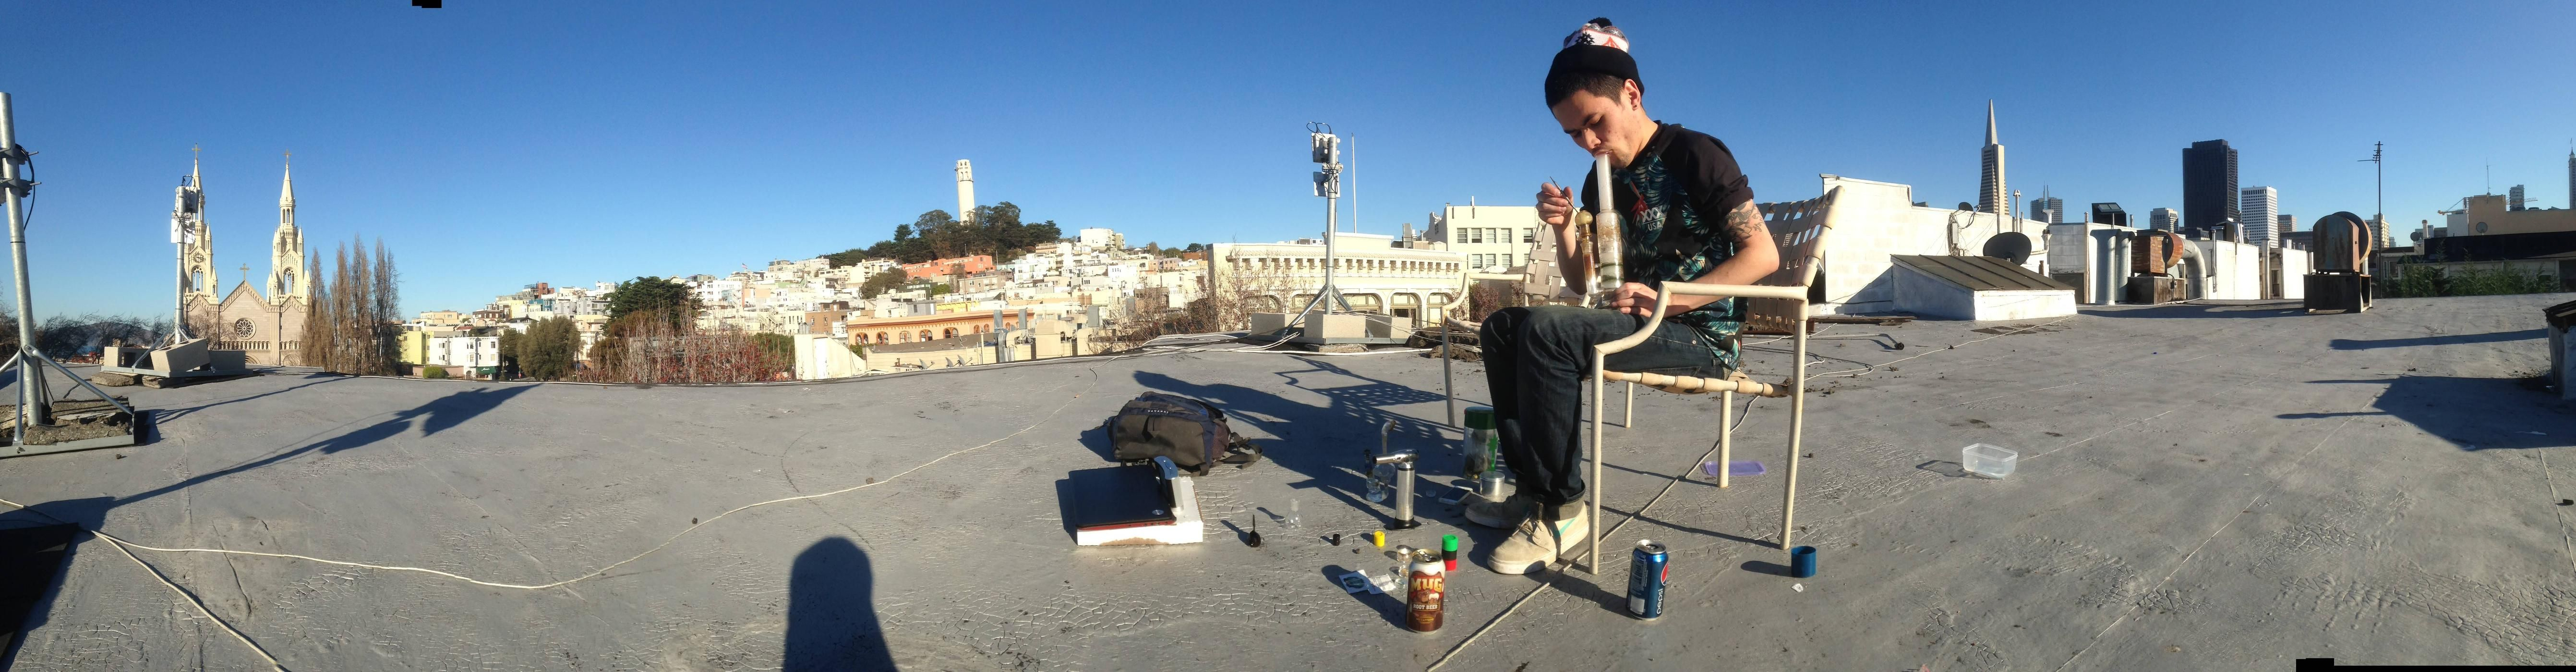 Smoke spot of the day. Roof dabs in SF. - http://potterest.com/pin/smoke-spot-of-the-day-roof-dabs-in-sf/